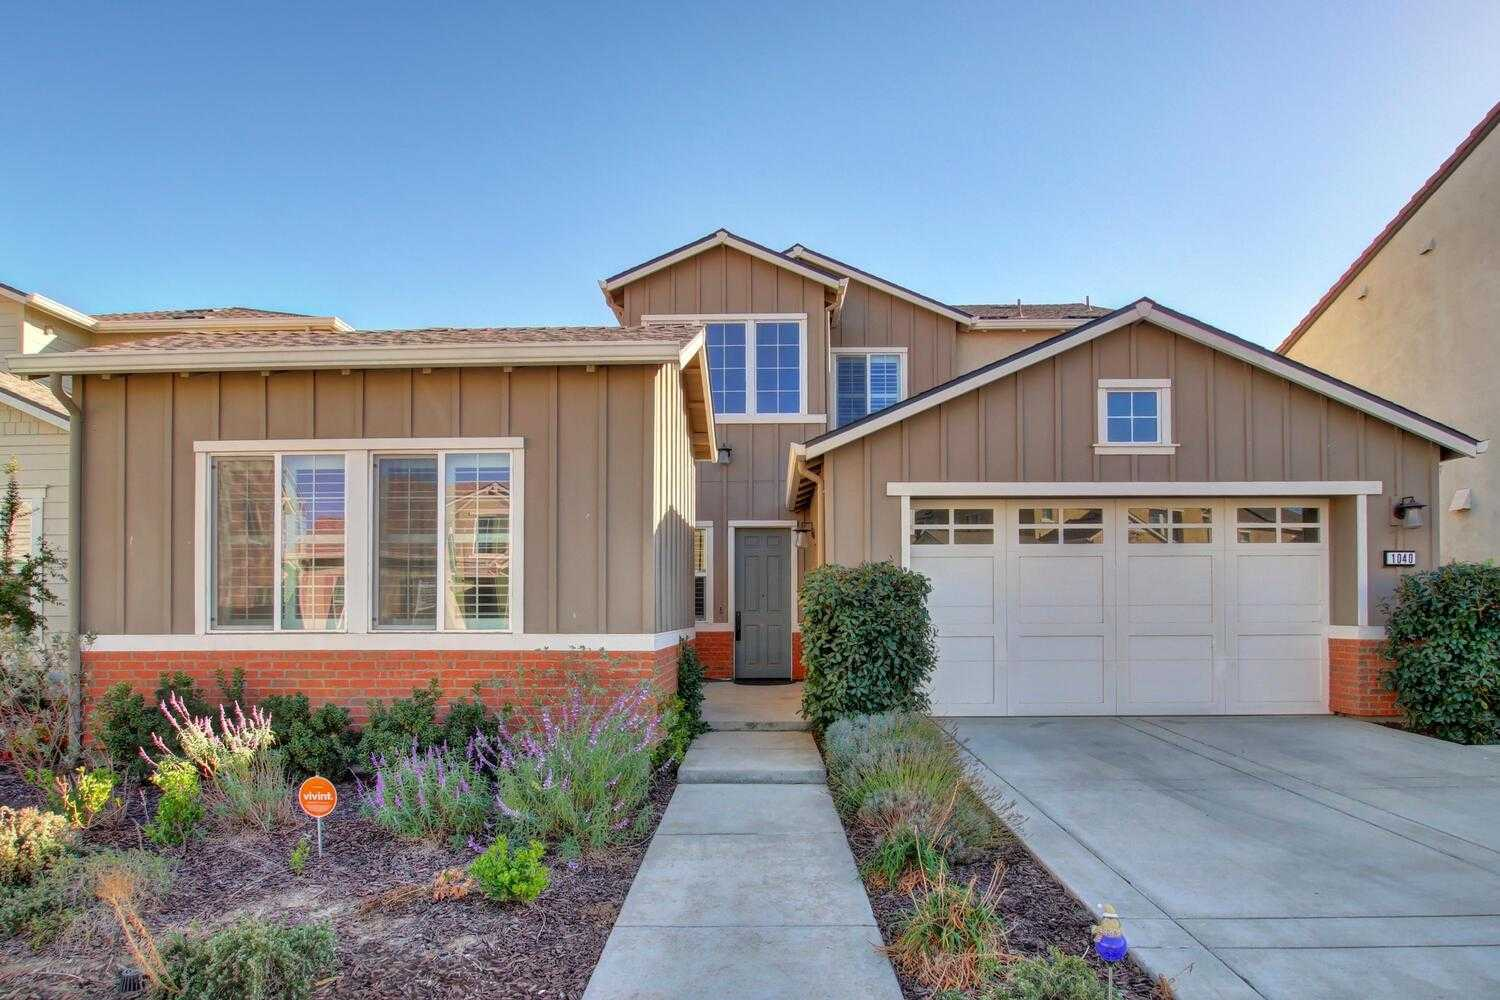 $1,197,000 - 4Br/4Ba -  for Sale in Cannery, Davis